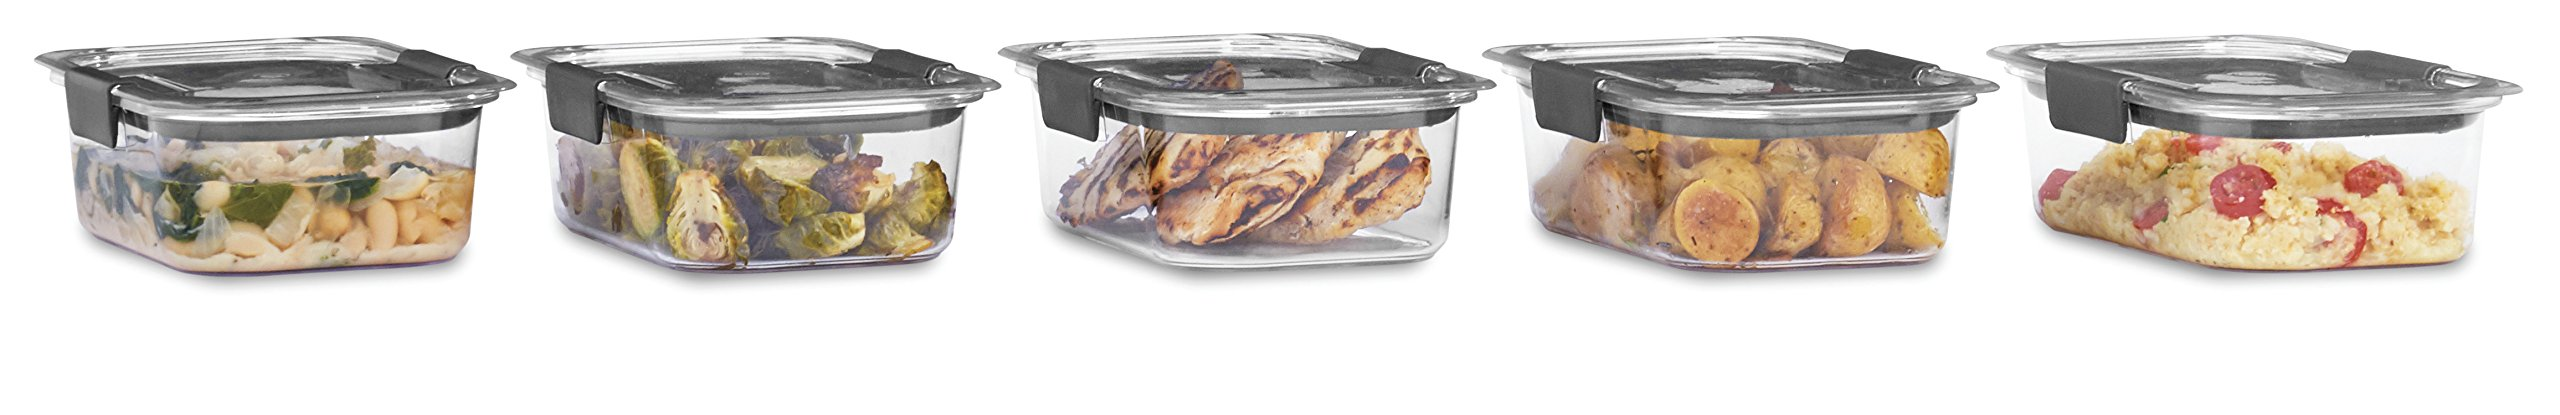 Rubbermaid Brilliance Food Storage Container, BPA-free Plastic, Medium, 3.2 Cup, 5-Pack, Clear by Rubbermaid (Image #4)